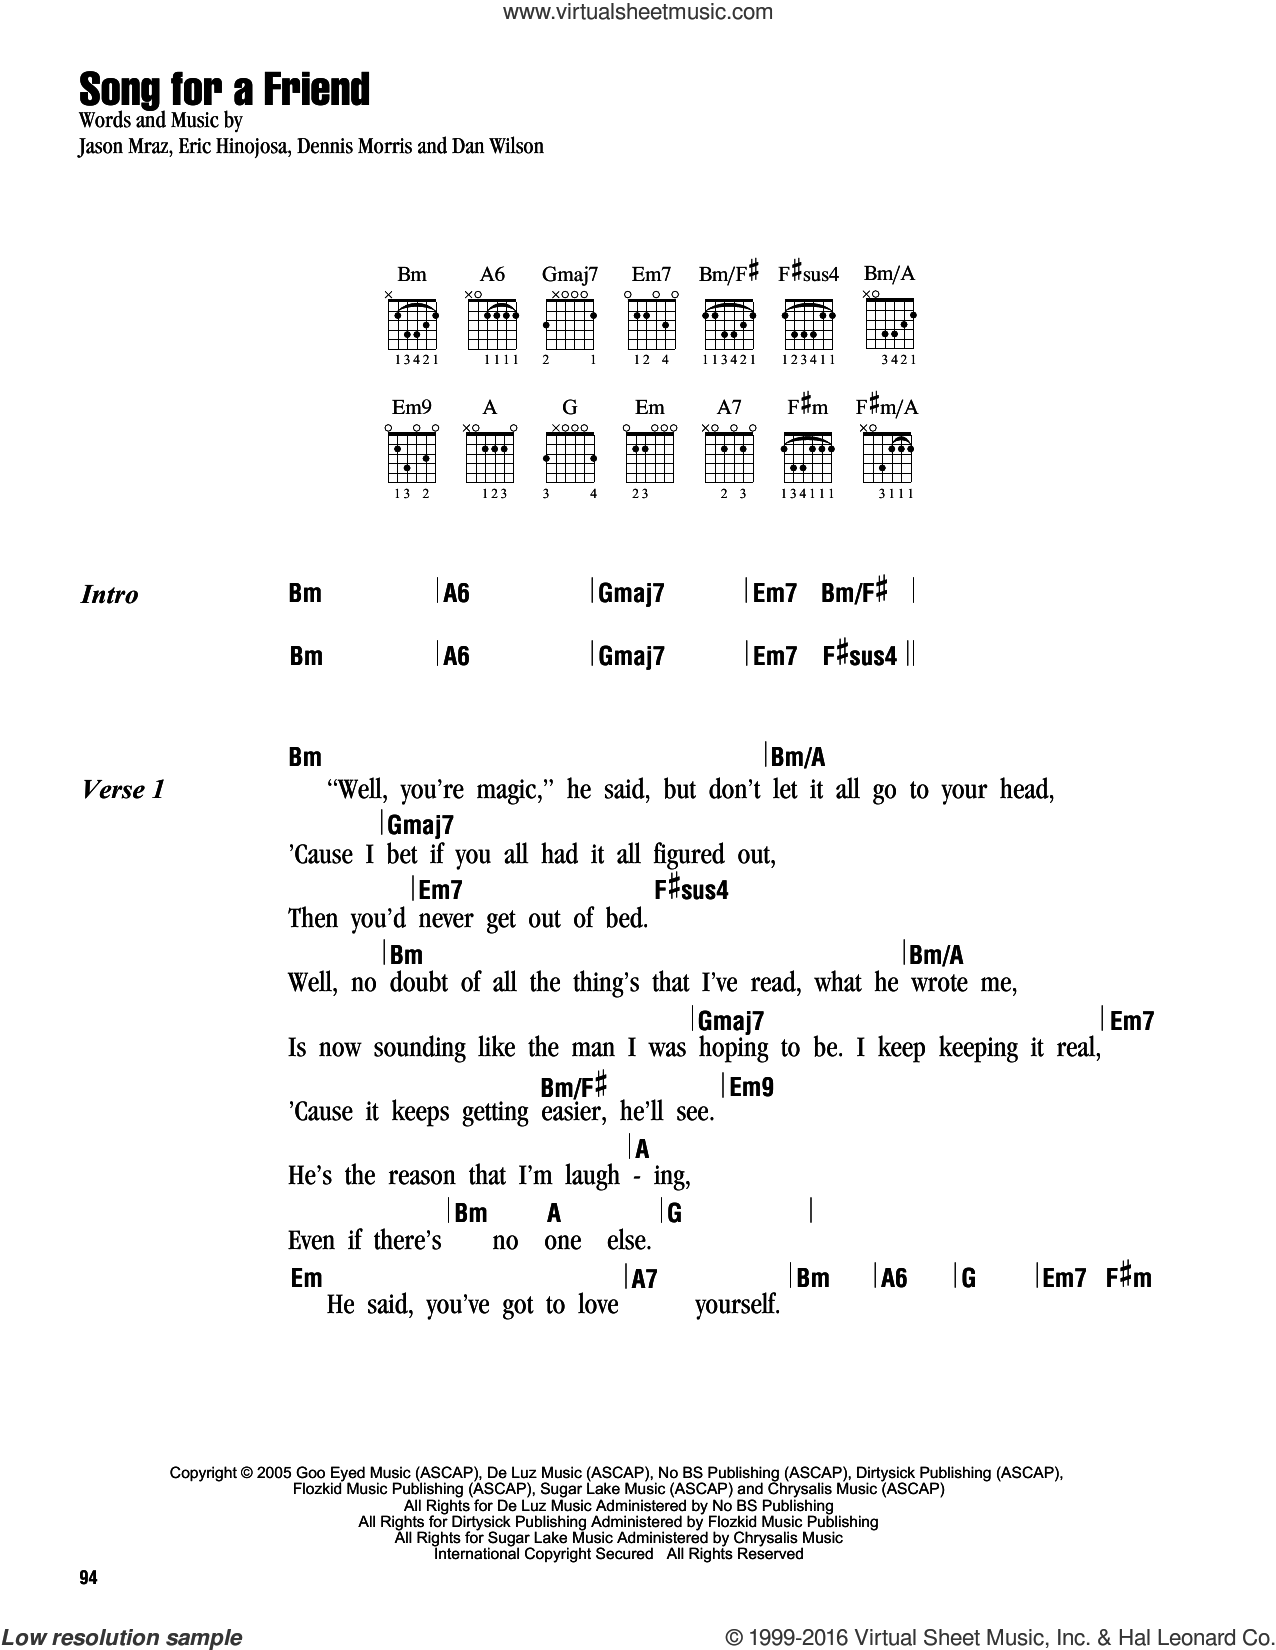 Song For A Friend sheet music for guitar (chords) by Jason Mraz, Dan Wilson, Dennis Morris and Eric Hinojosa, intermediate skill level